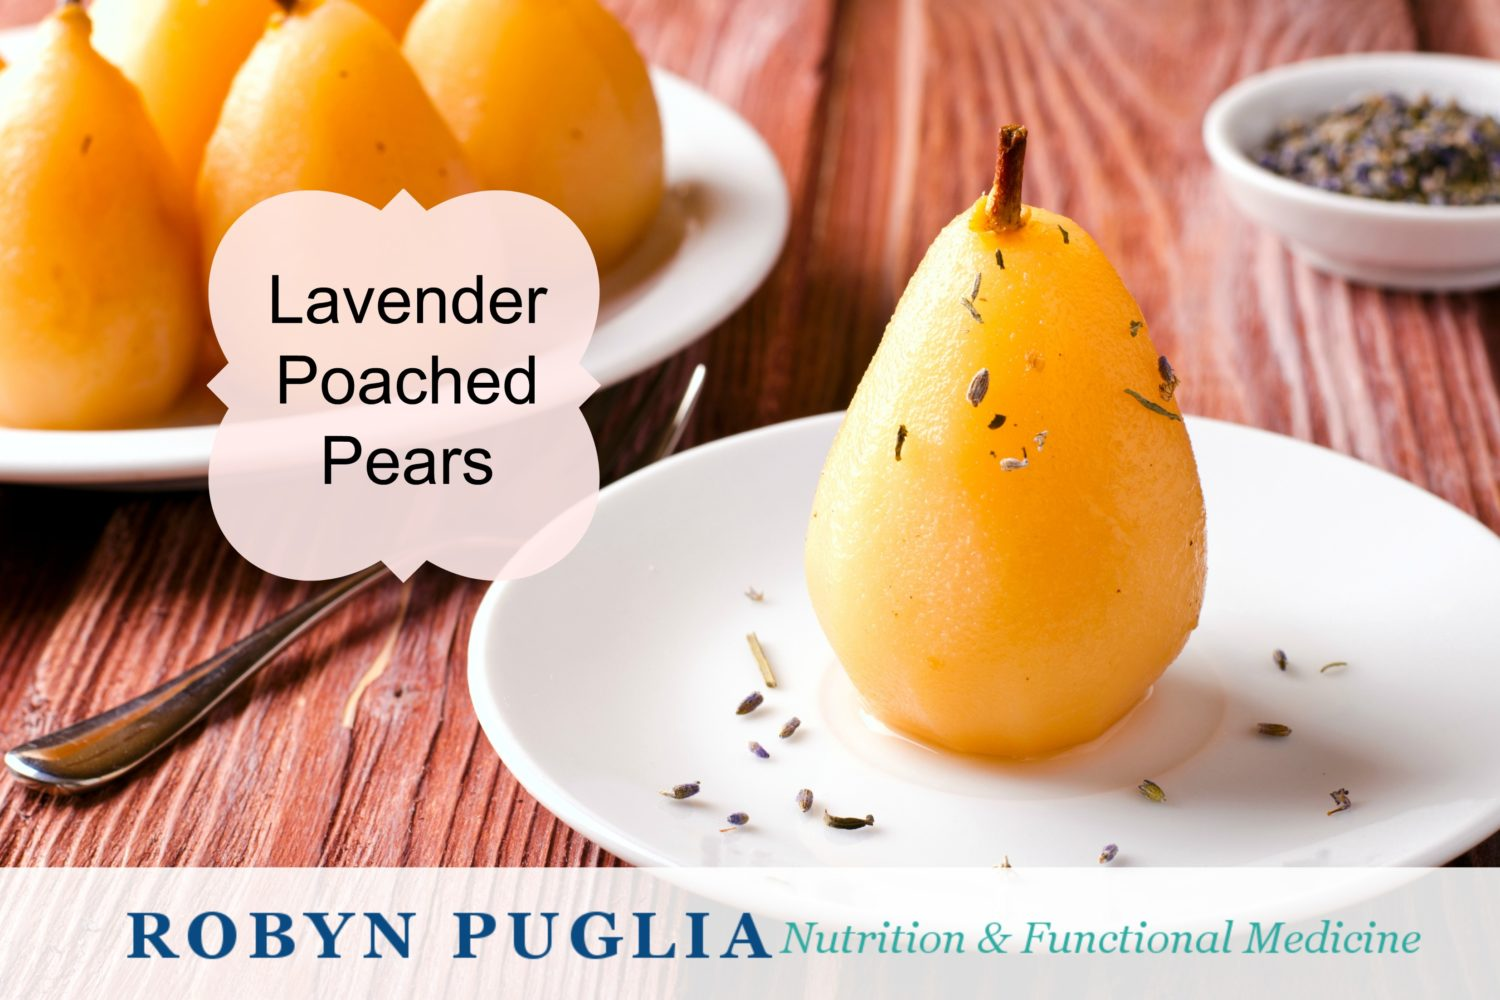 Lavender Poached Pears